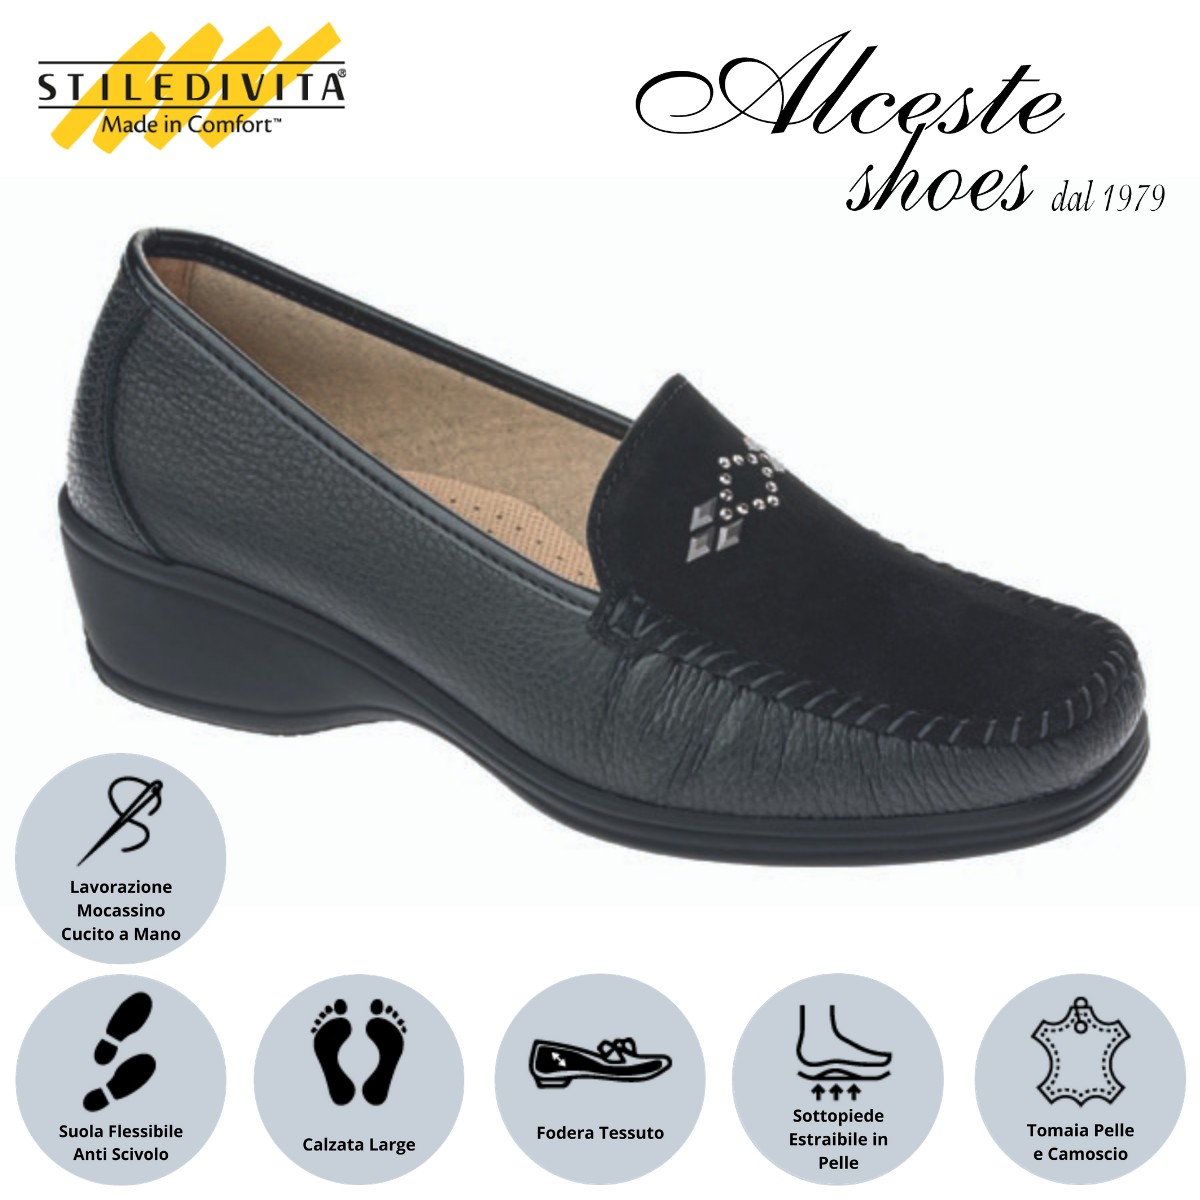 Mocassino Stiledivita art. 7475 nero